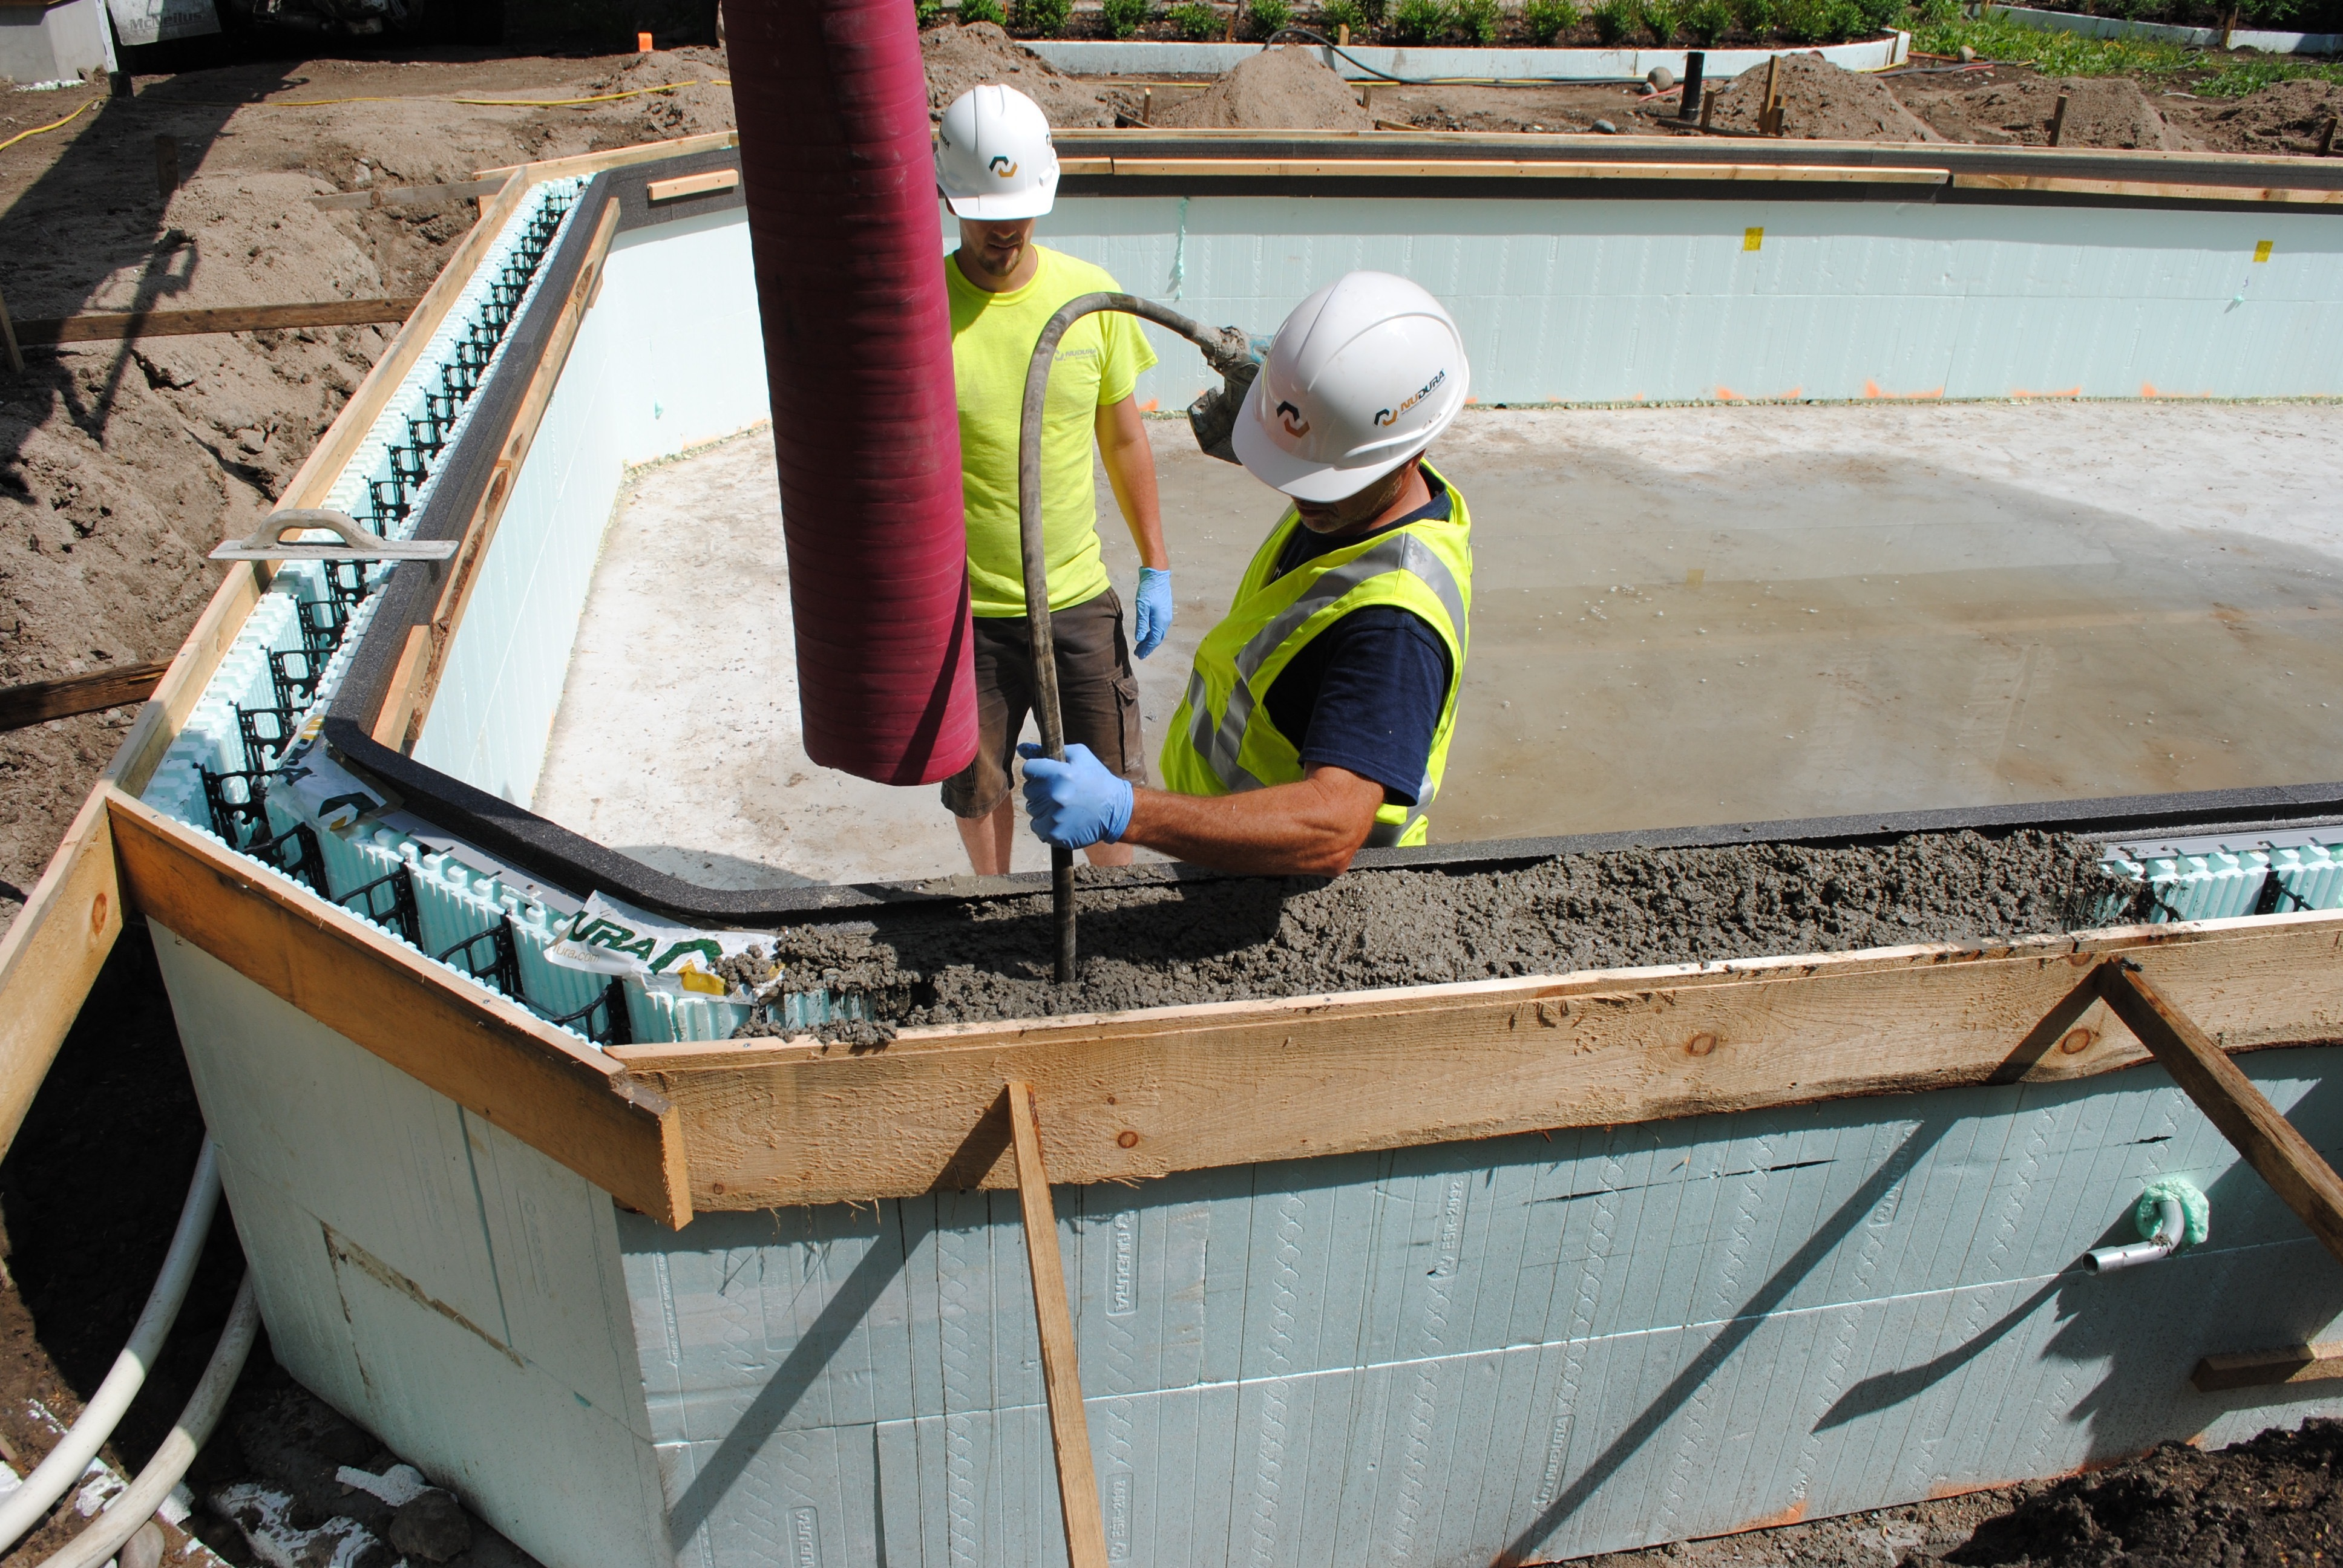 RPM Acquires Leading Provider of Insulated Concrete Forms | Business Wire